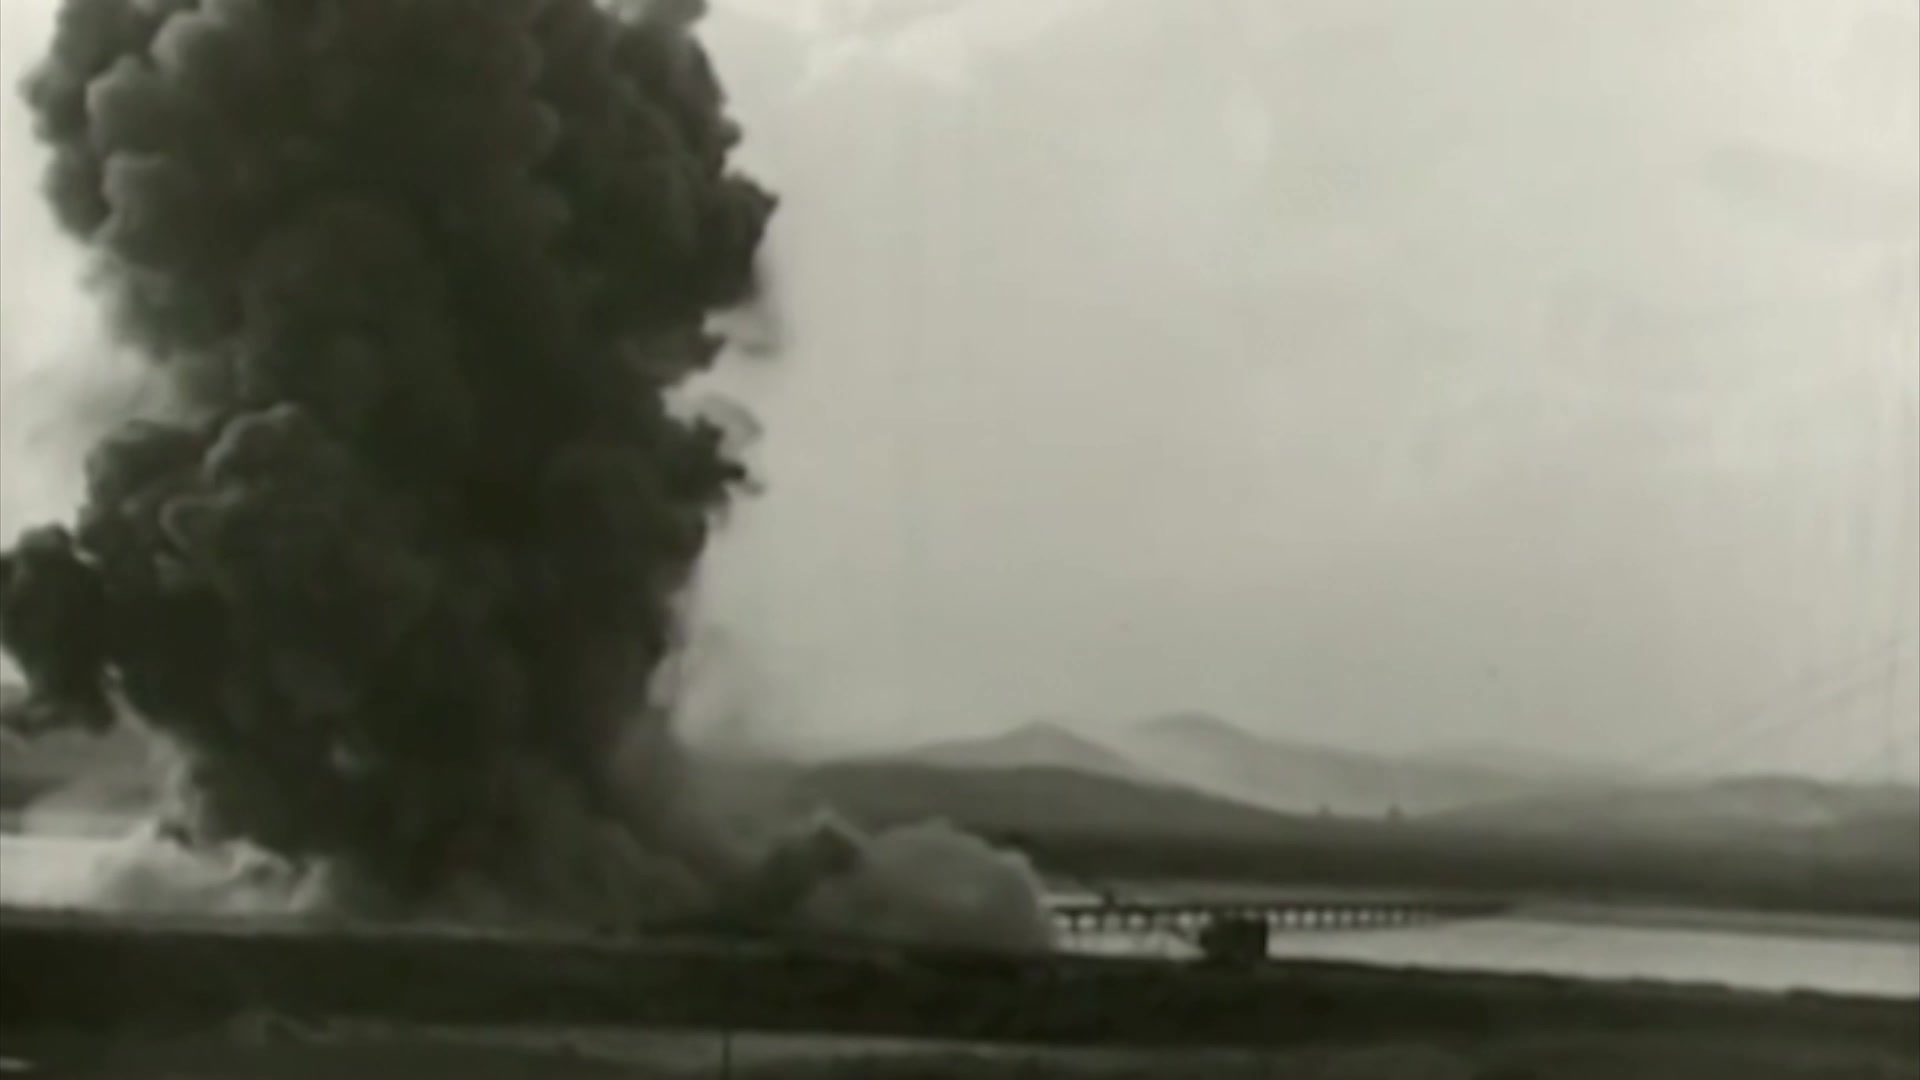 Black smoke billows up near a body of water, as if from an explosion.